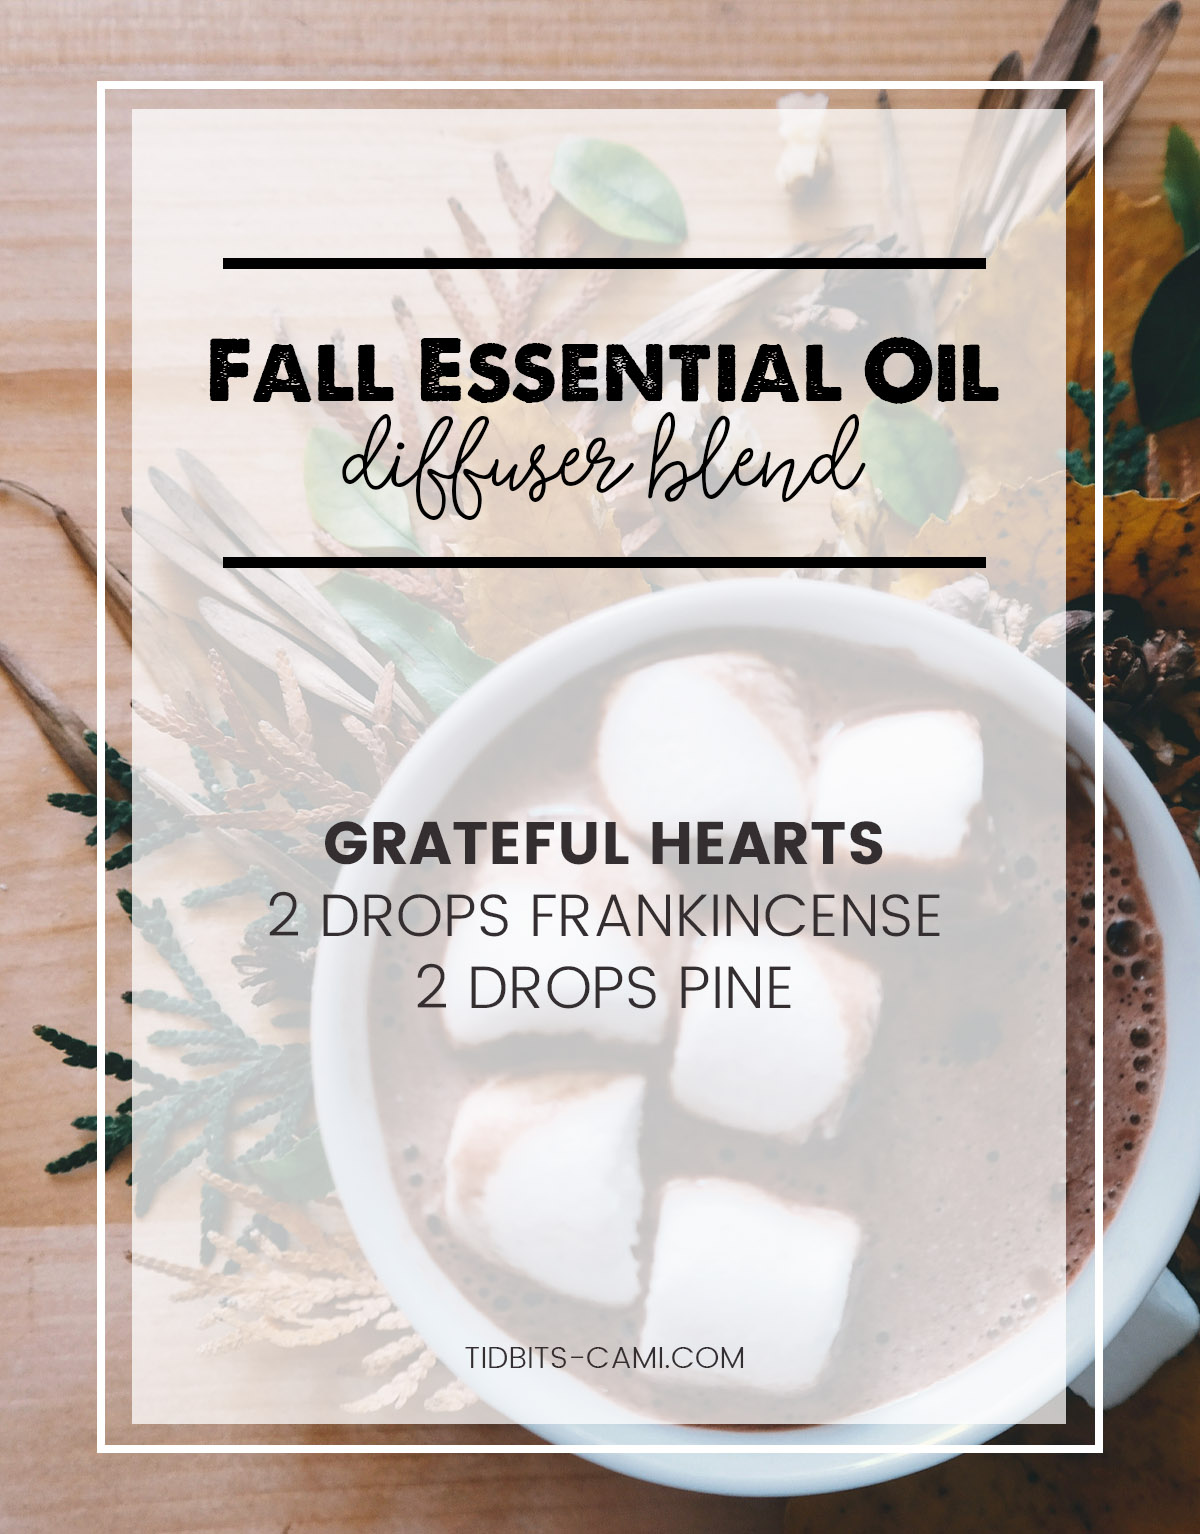 Grateful hearts essential oil diffuser blend